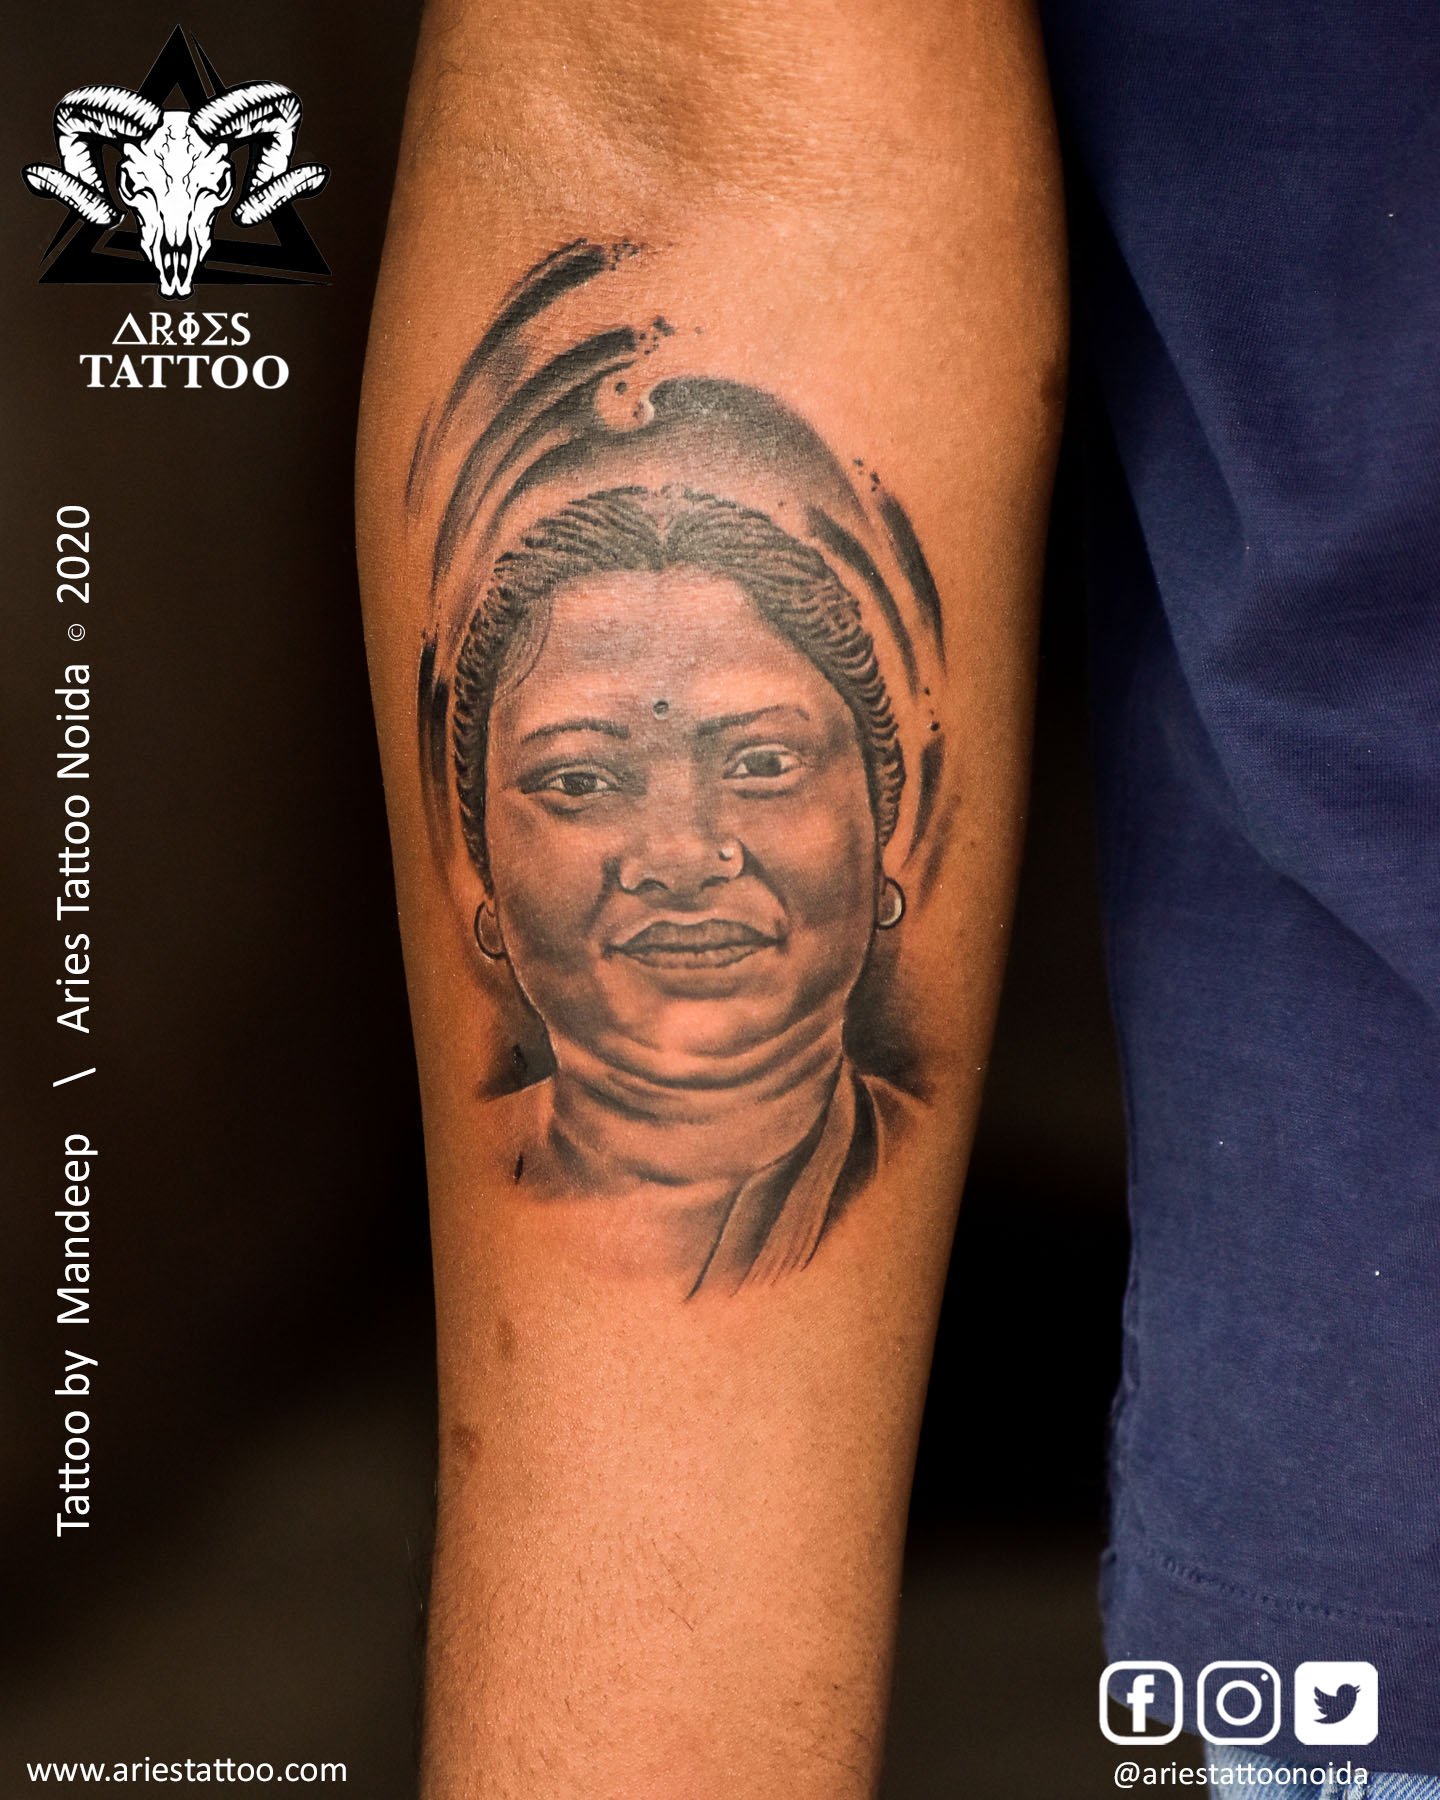 portraittattoo_mandeep_ariestattoonoida | |Aries Tattoo Noida | Tattoo Shop and Studio In Noida